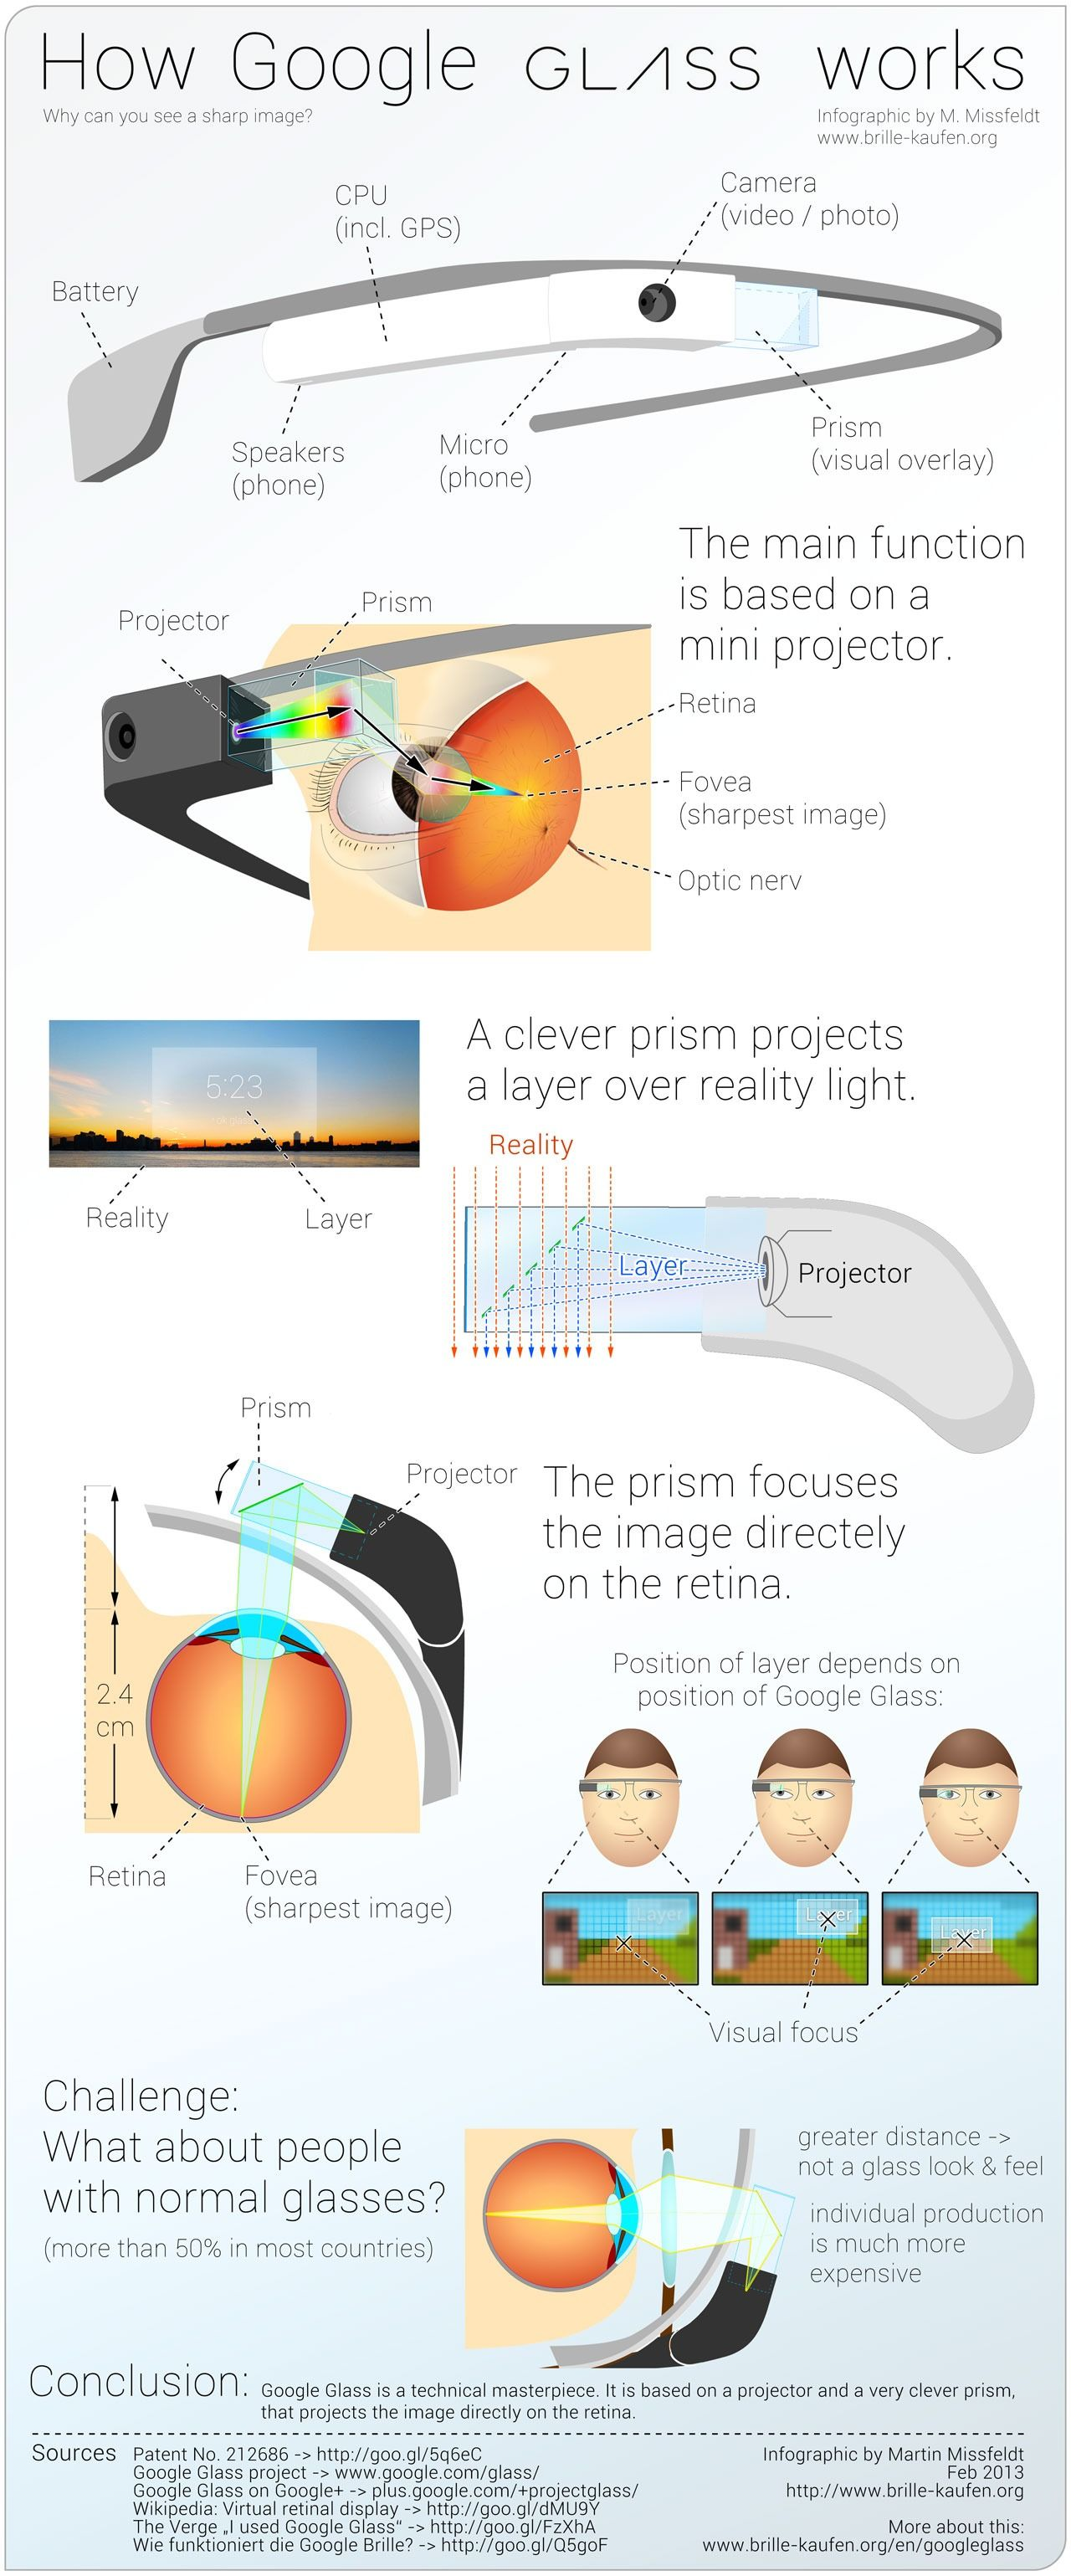 Google Glass - How it Works: an infographic